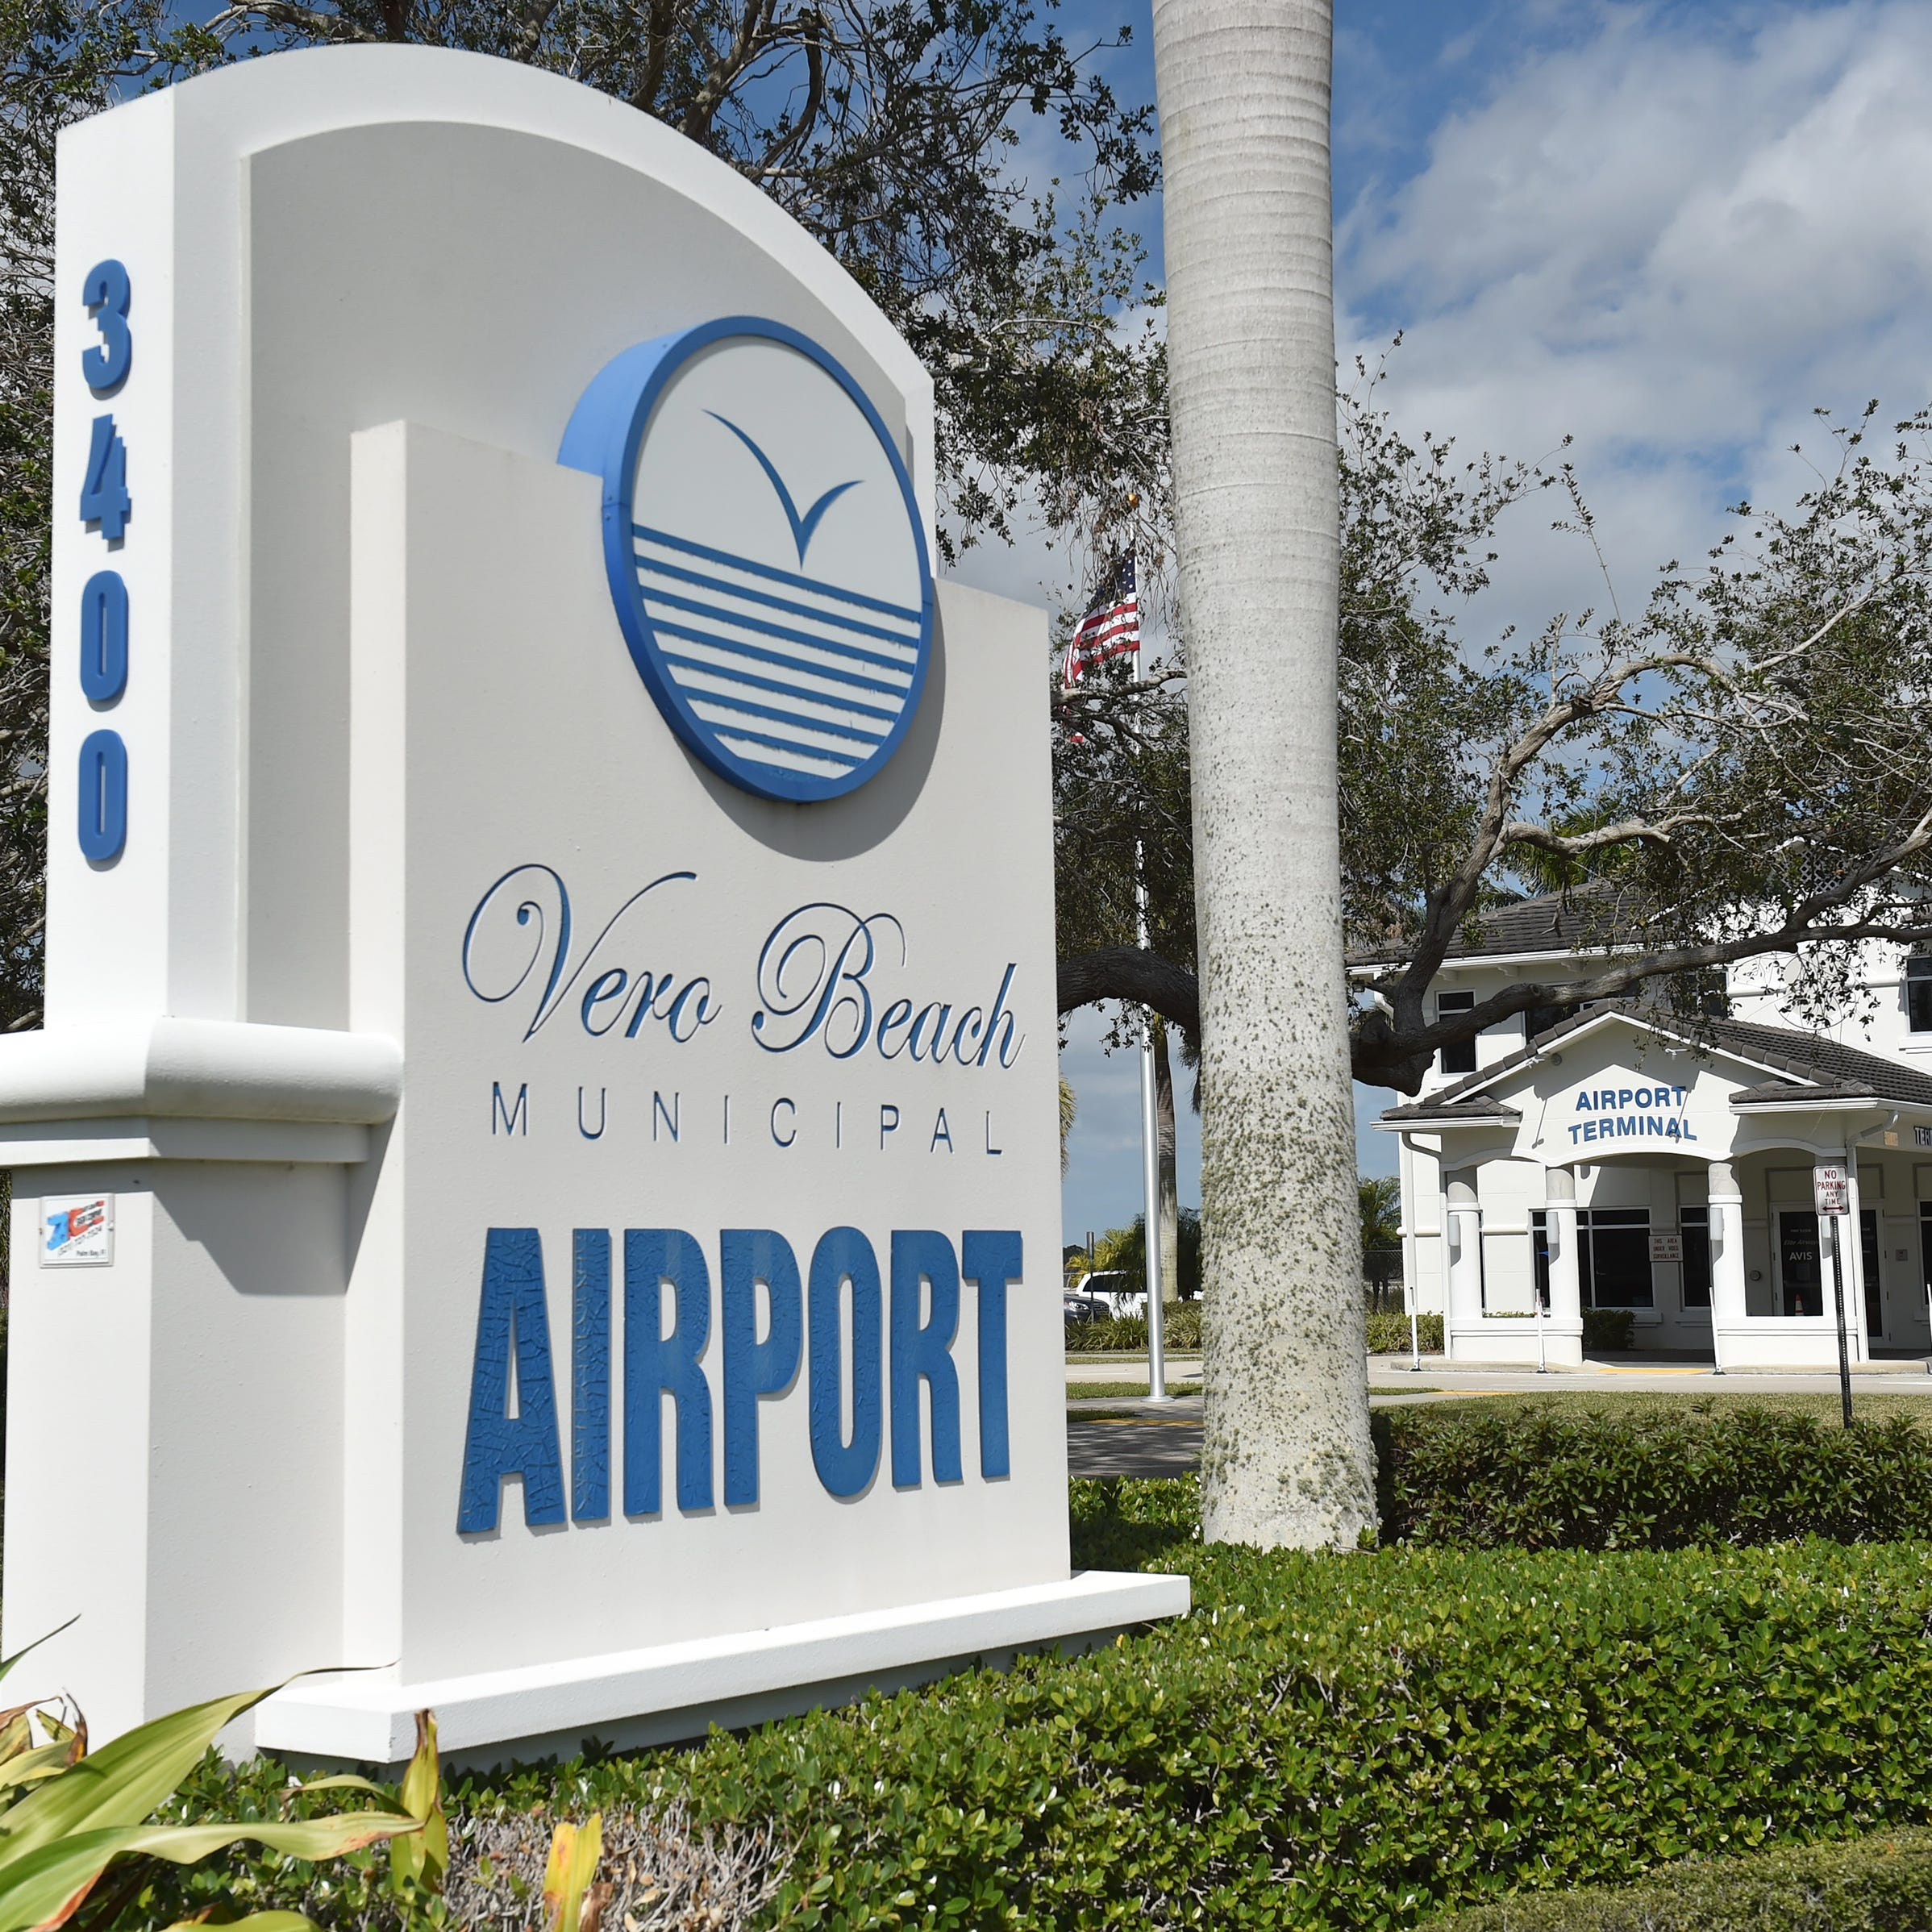 Plane with flaming engine lands at Vero Beach Regional Airport